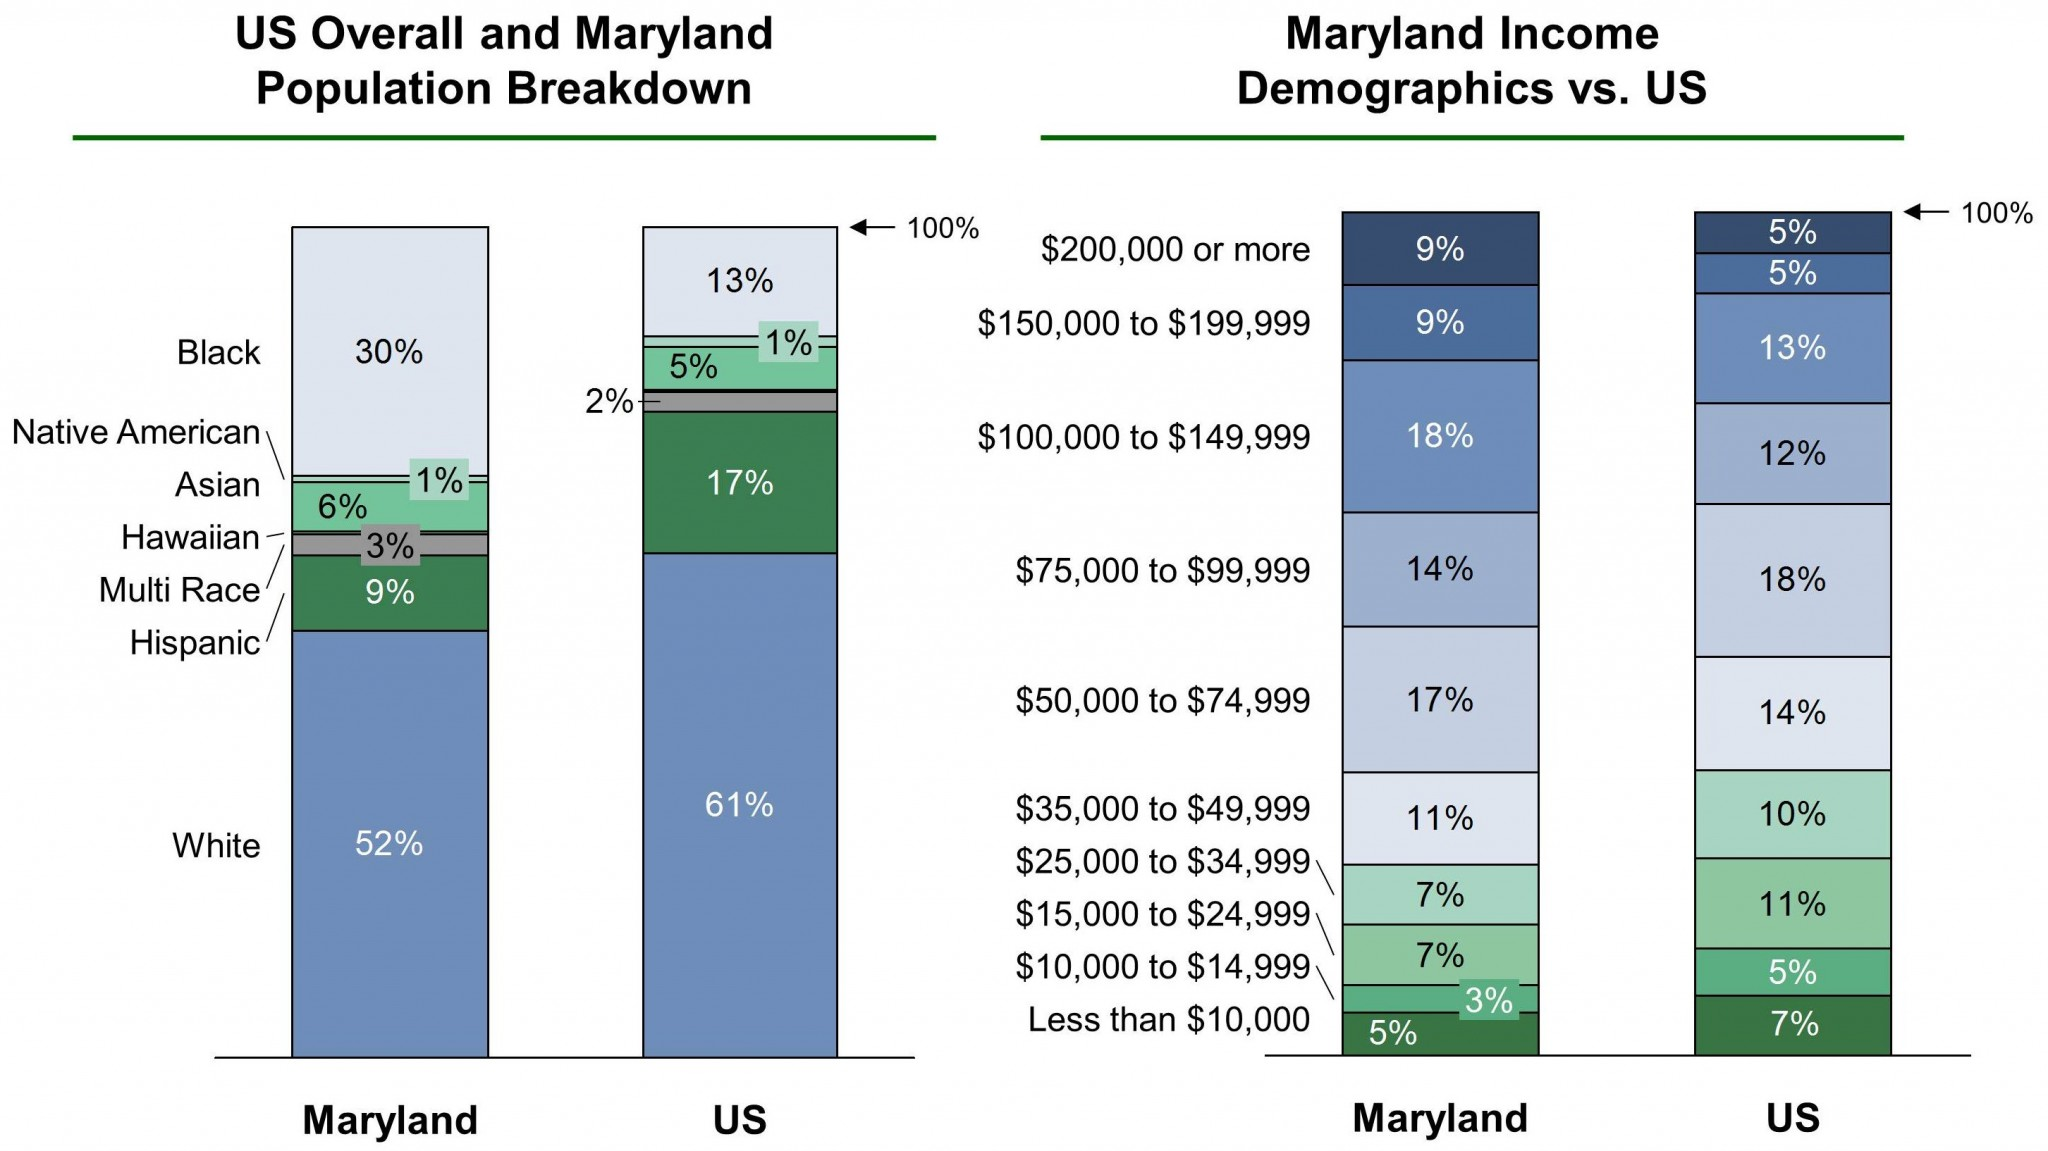 Maryland EB-5 Regional Center Demographics VF